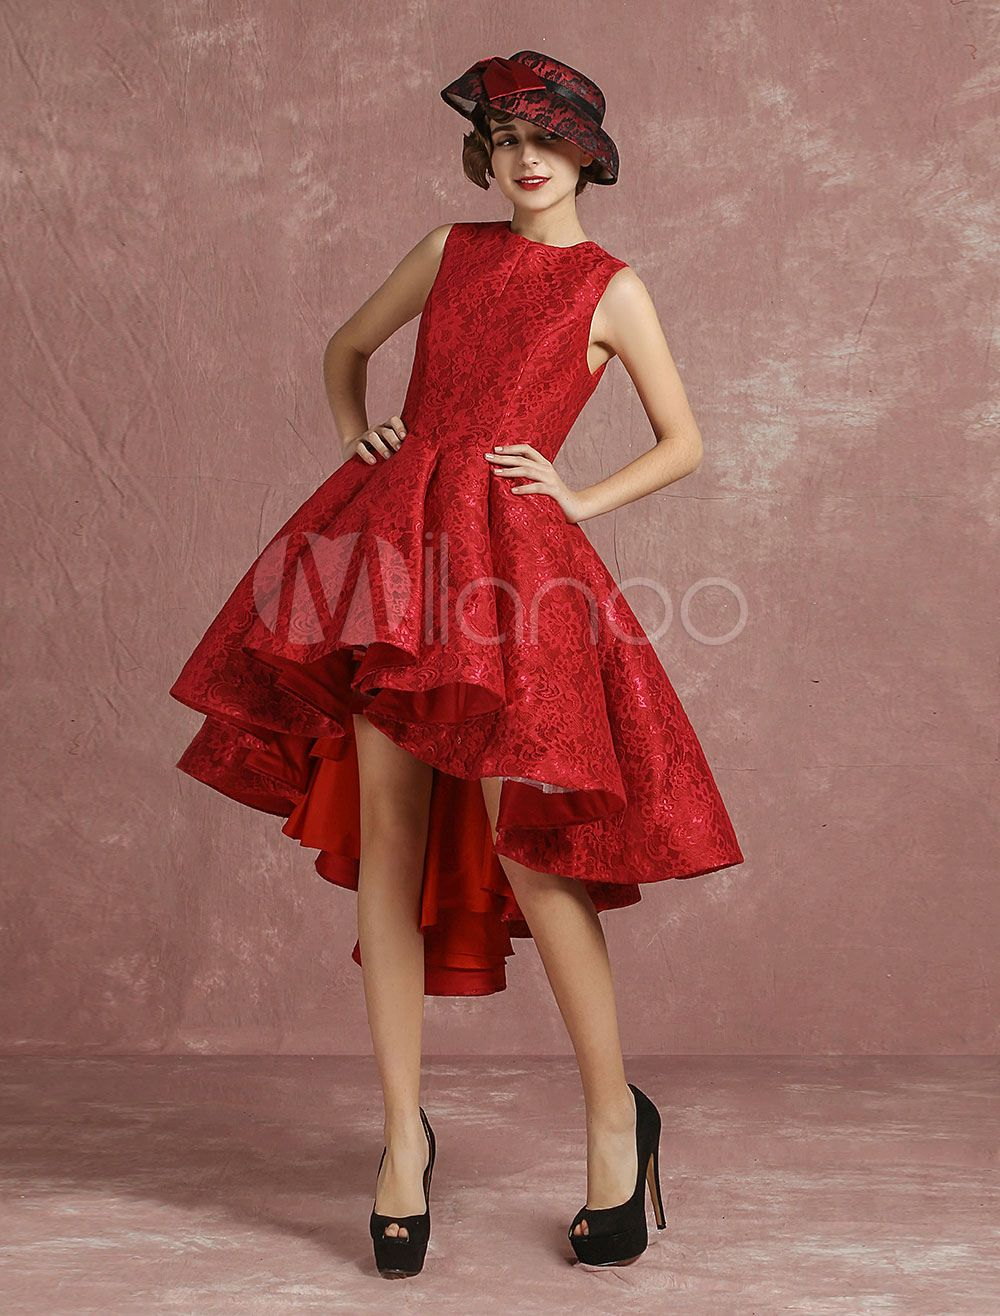 7567169a0ff Red Prom Dresses 2018 Short Lace Cocktail Dress Burgundy Pleated A Line  Round Neck Sleeveless High